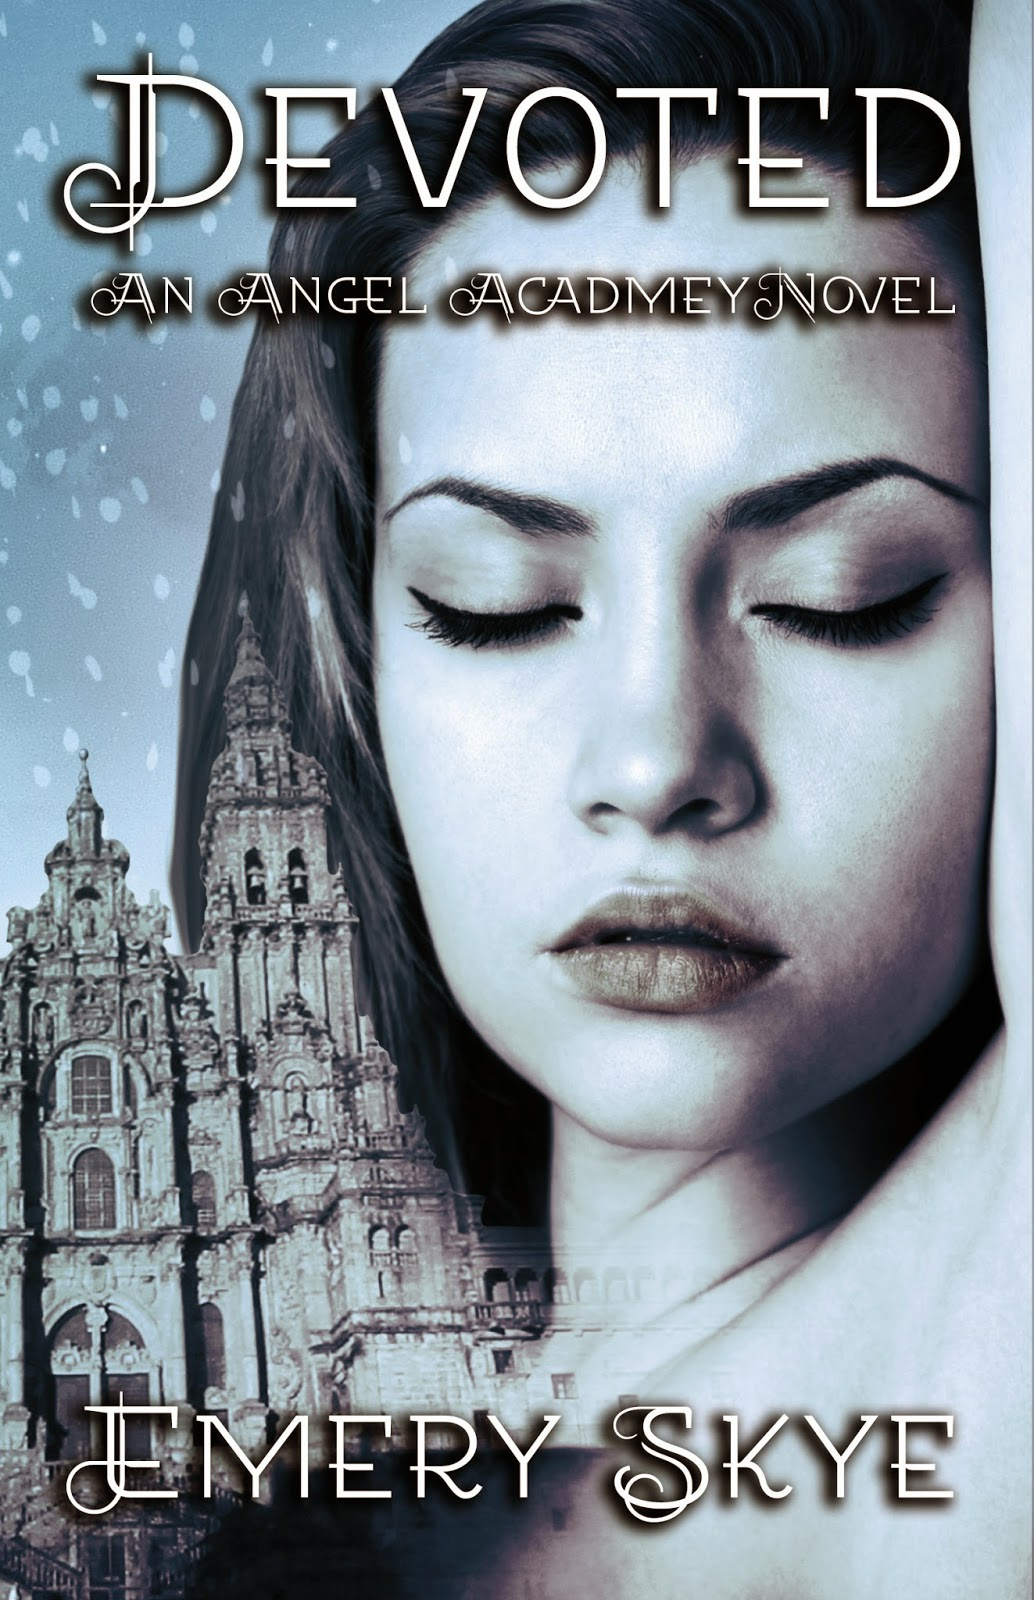 http://www.amazon.com/Devoted-Angel-Academy-Novel-Book-ebook/dp/B00MWZDSM8/ref=as_sl_pc_ss_til?tag=lemonpress-20&linkCode=w01&linkId=MMOZAWCH6E6QJD4R&creativeASIN=B00MWZDSM8